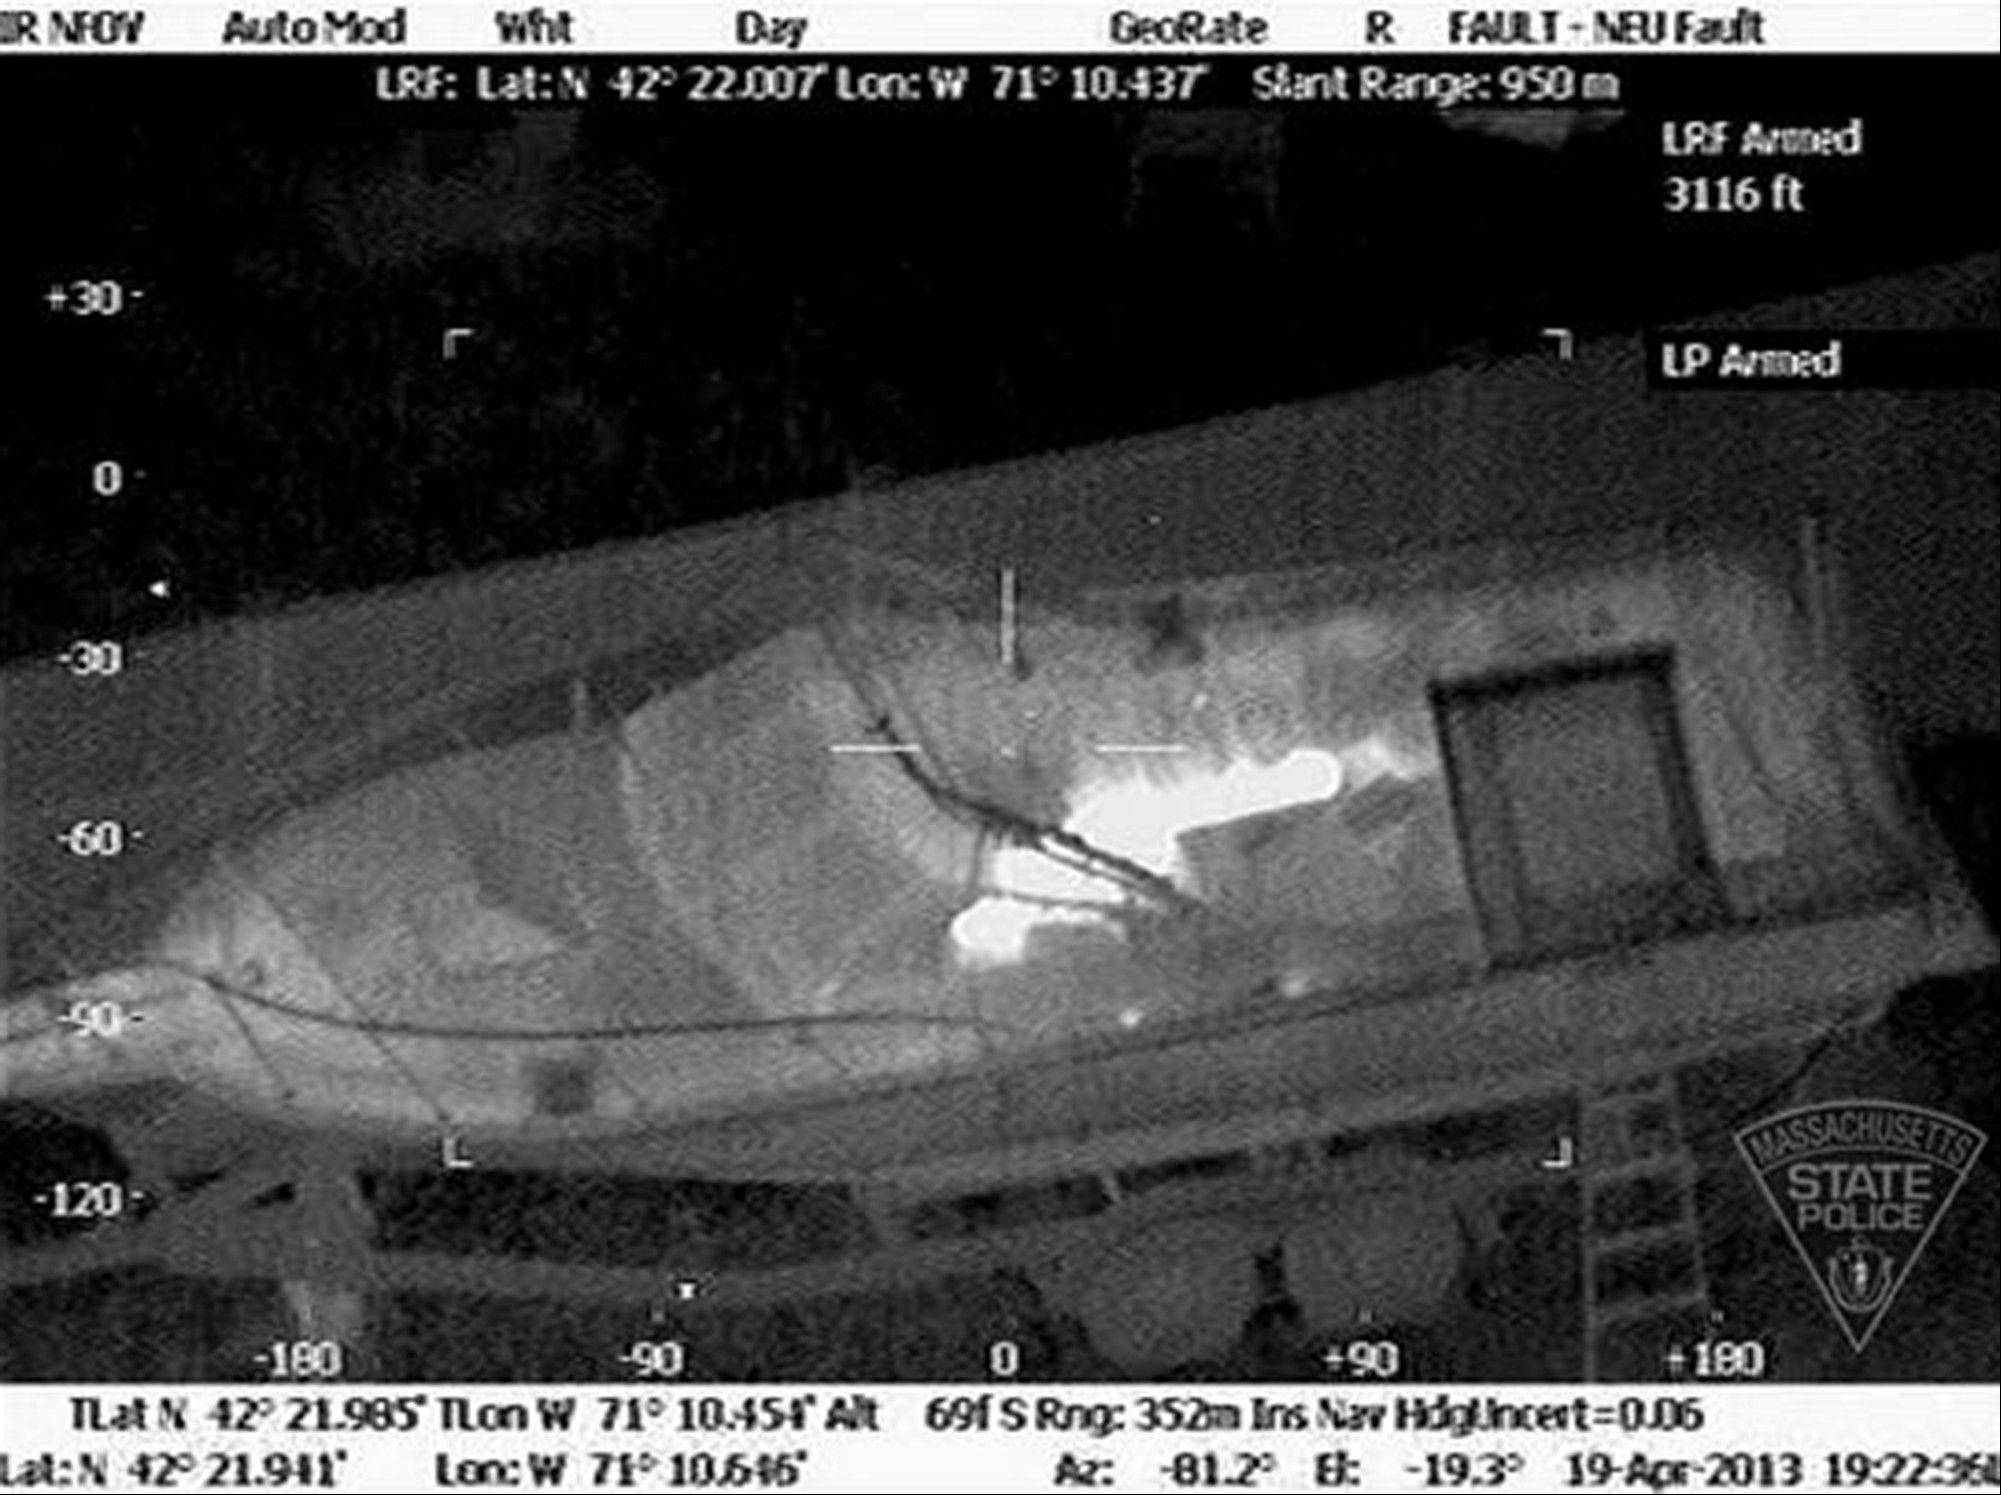 Boston Marathon bombing suspect, Dzhokhar Tsarnaev, hiding inside a boat during a search for him in Watertown, Mass.